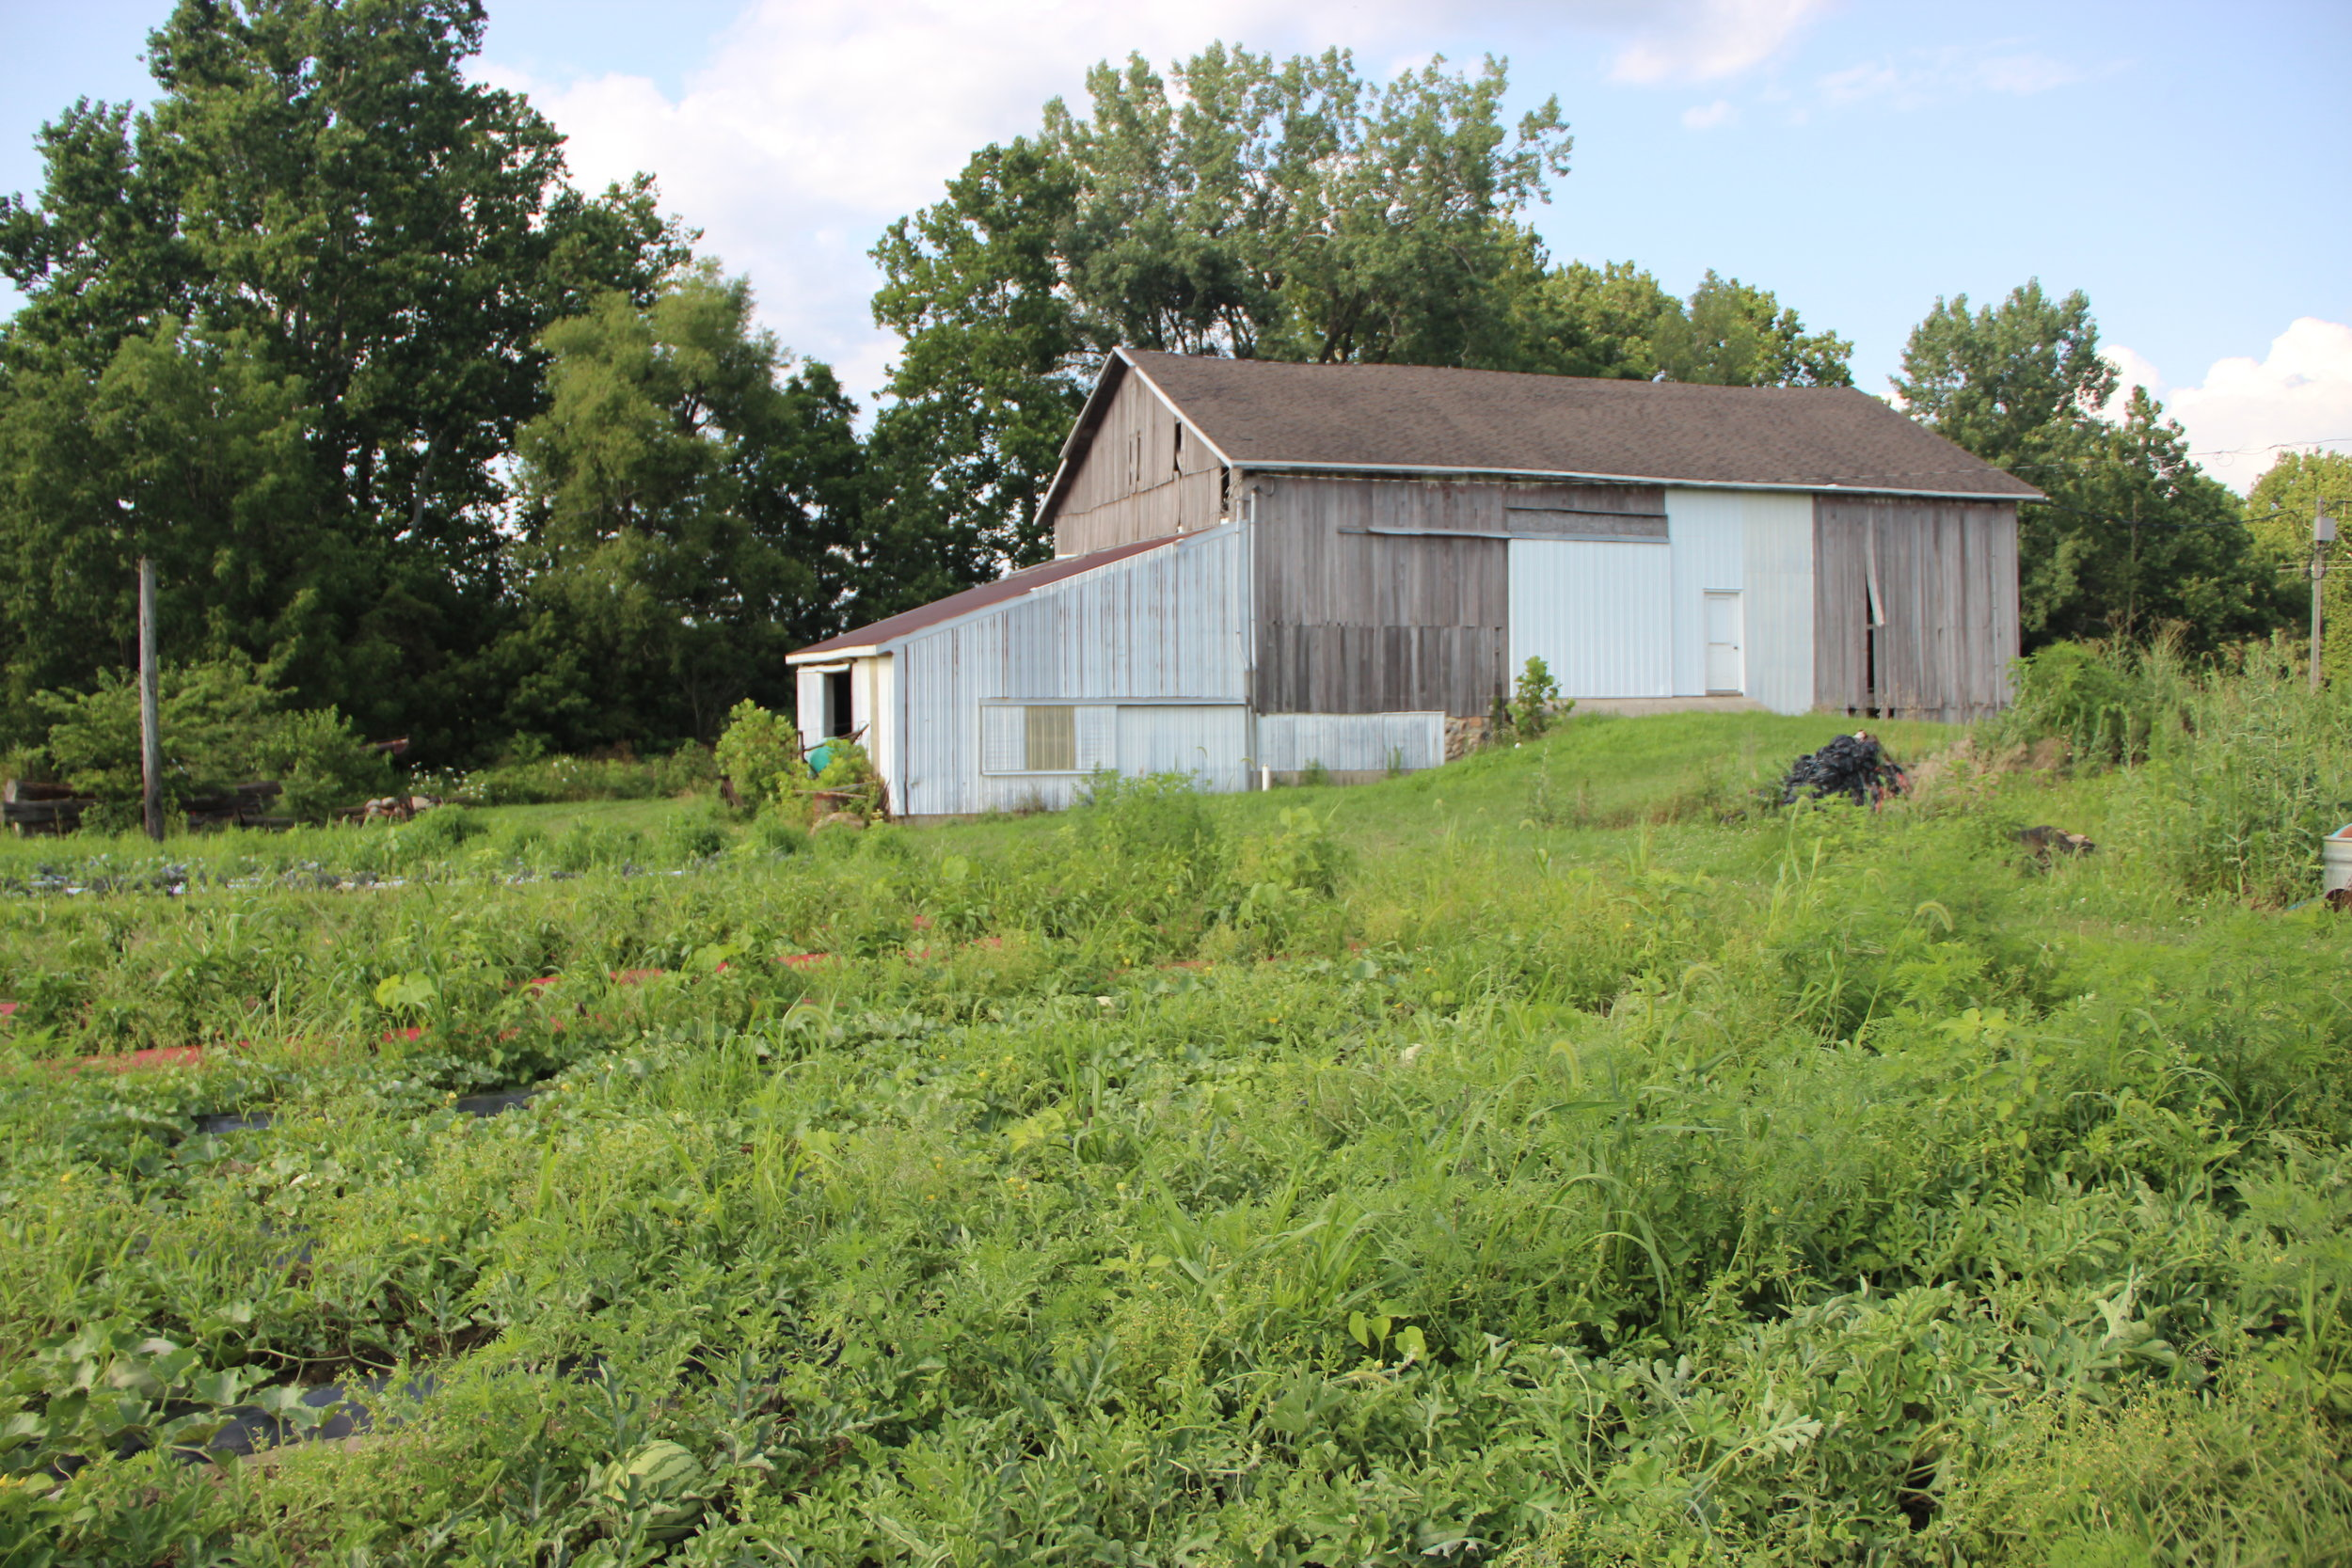 No farm visit is complete till you see the barn, it's perfect since it's framed by his garden.